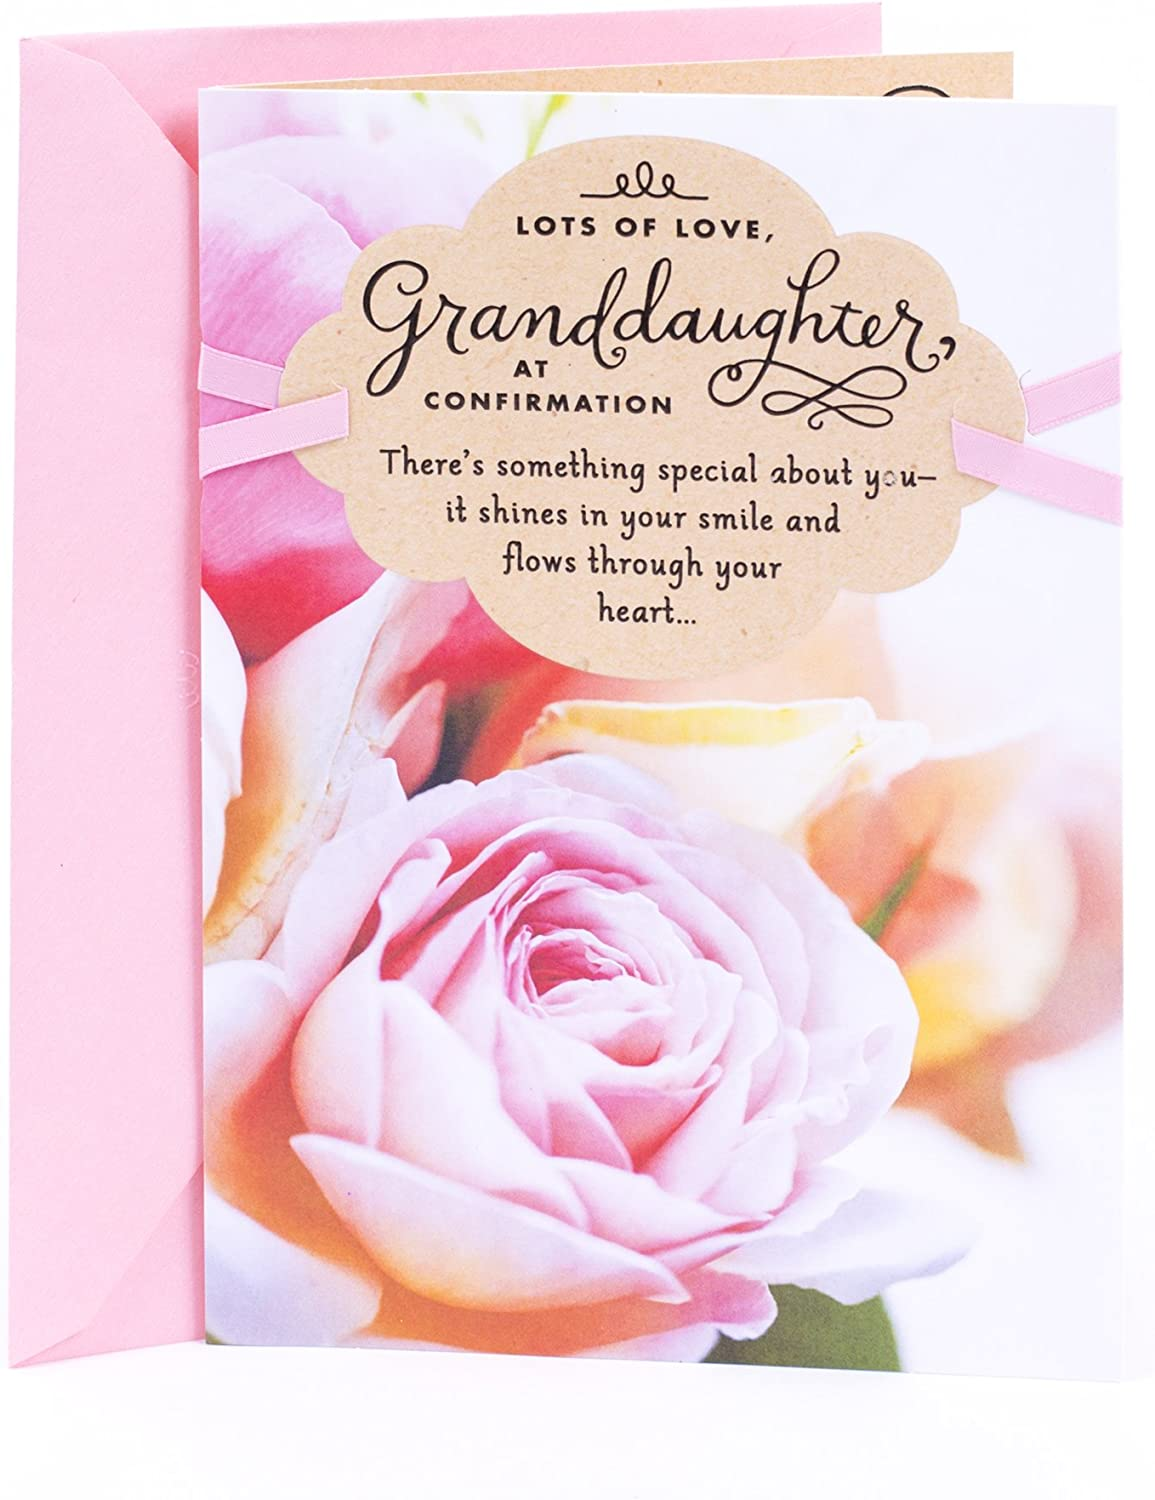 for A Very Special Granddaughter with Love On Your Confirmation Day Card with Pale Pink Ribbon